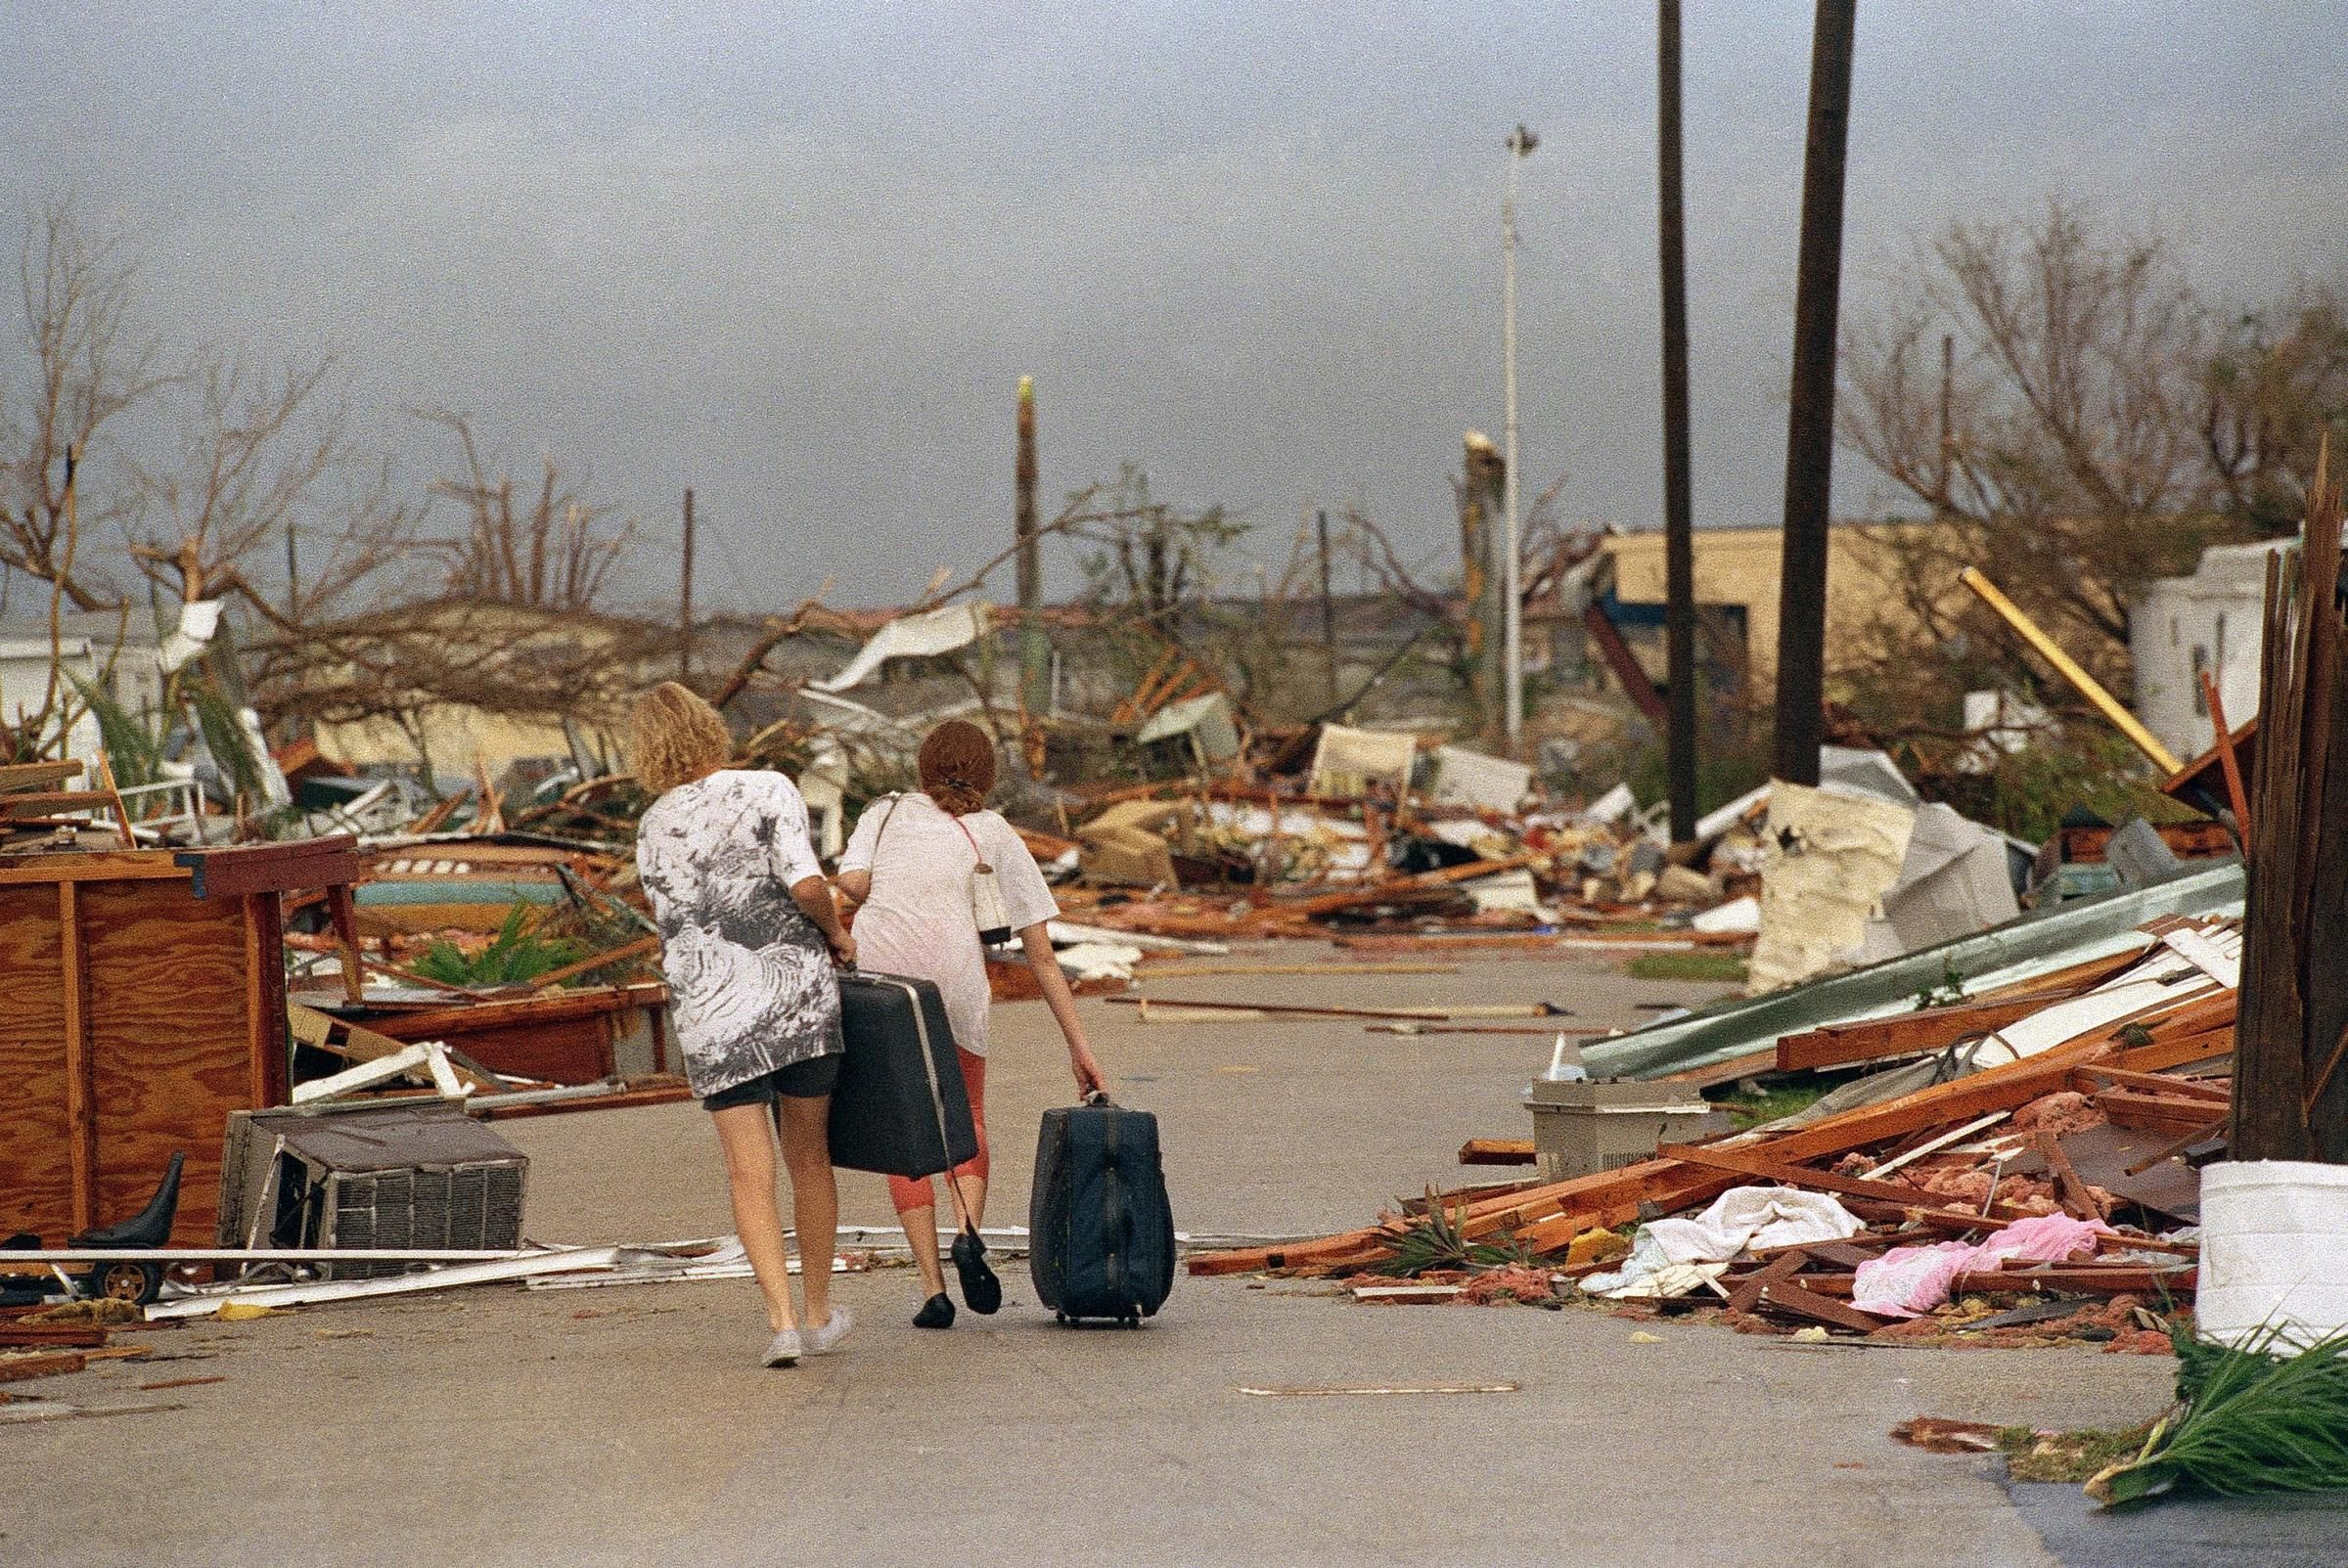 Andrew Blew Through South Florida And Homestead Google Search Hurricane Andrew Hurricane Pictures Storm Surge